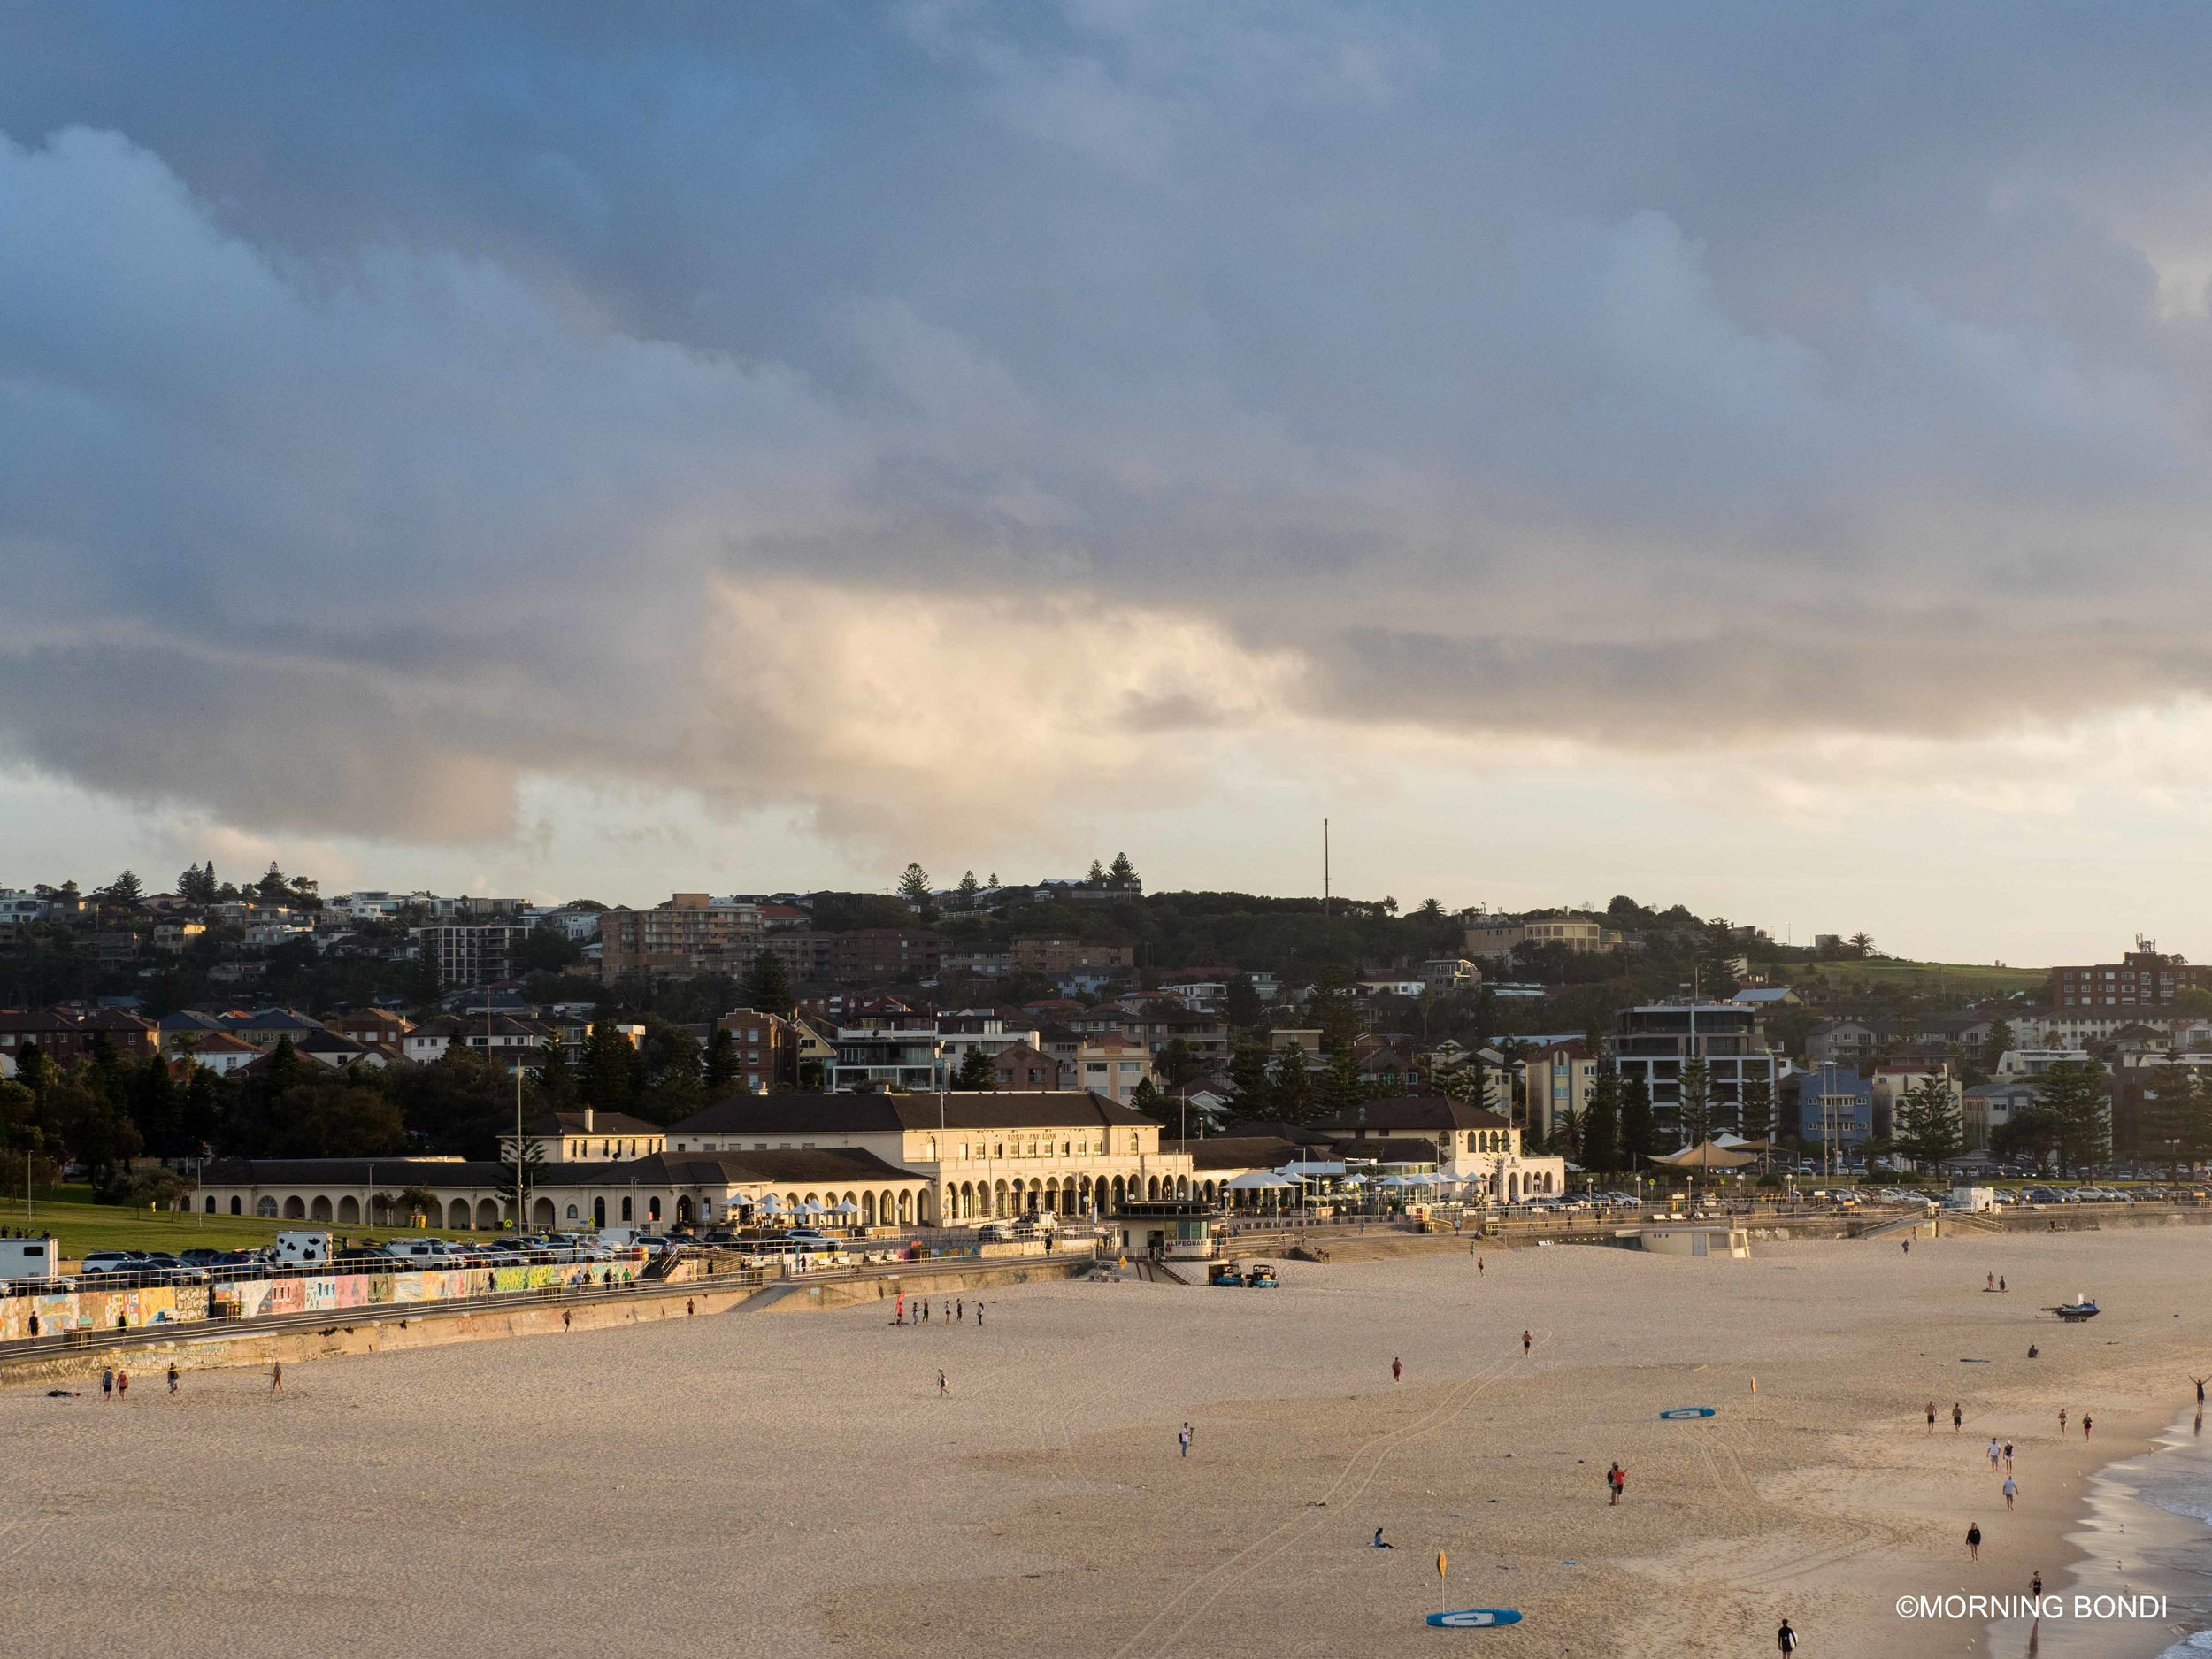 Two Bondi icons: the Bondi Pavilion and the Bondi Lifeguards Tower